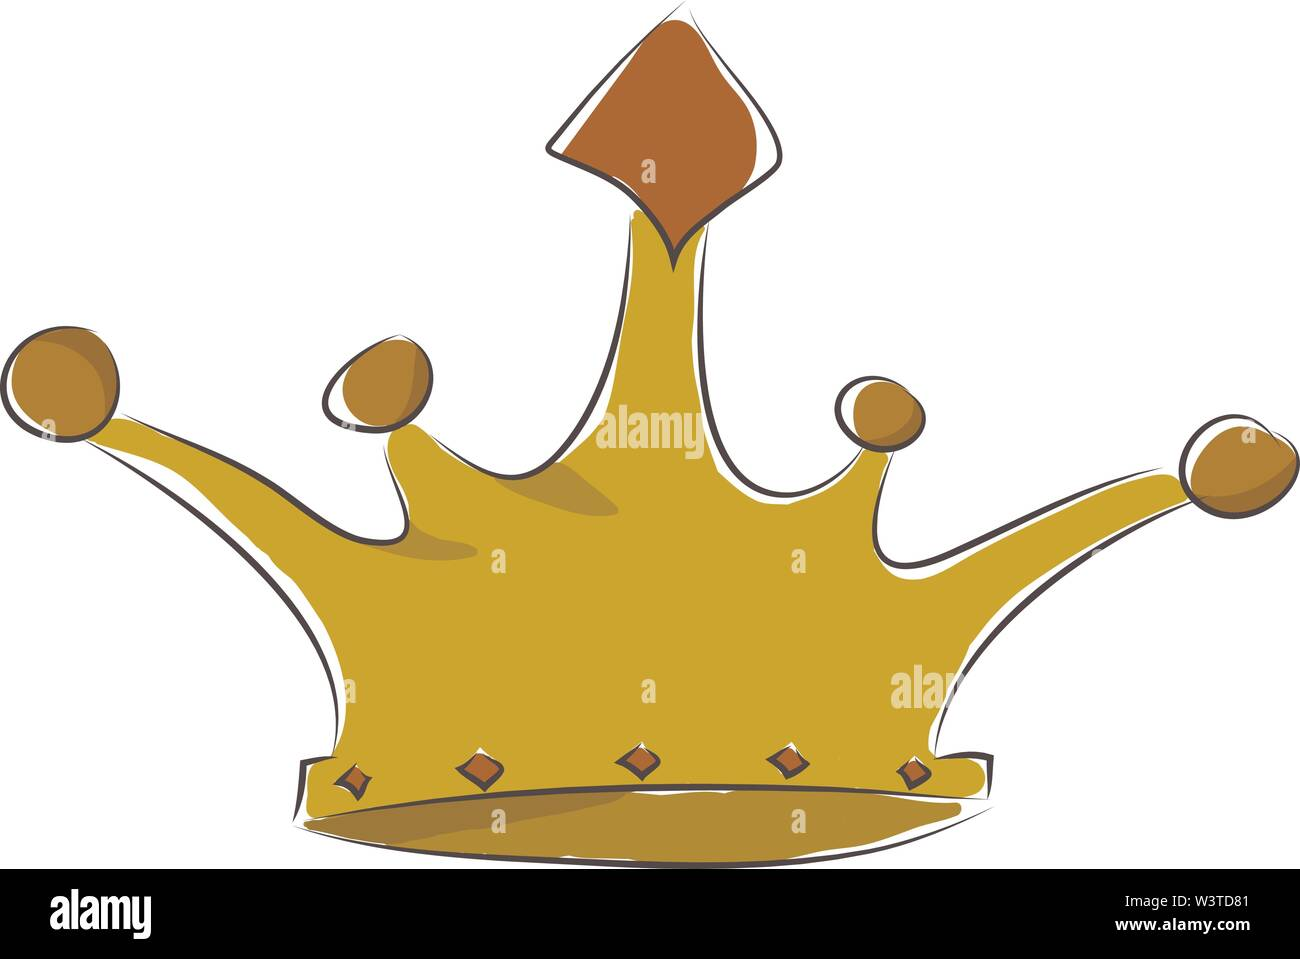 A shiny golden crown with red stone at the center, vector, color drawing or illustration. - Stock Image